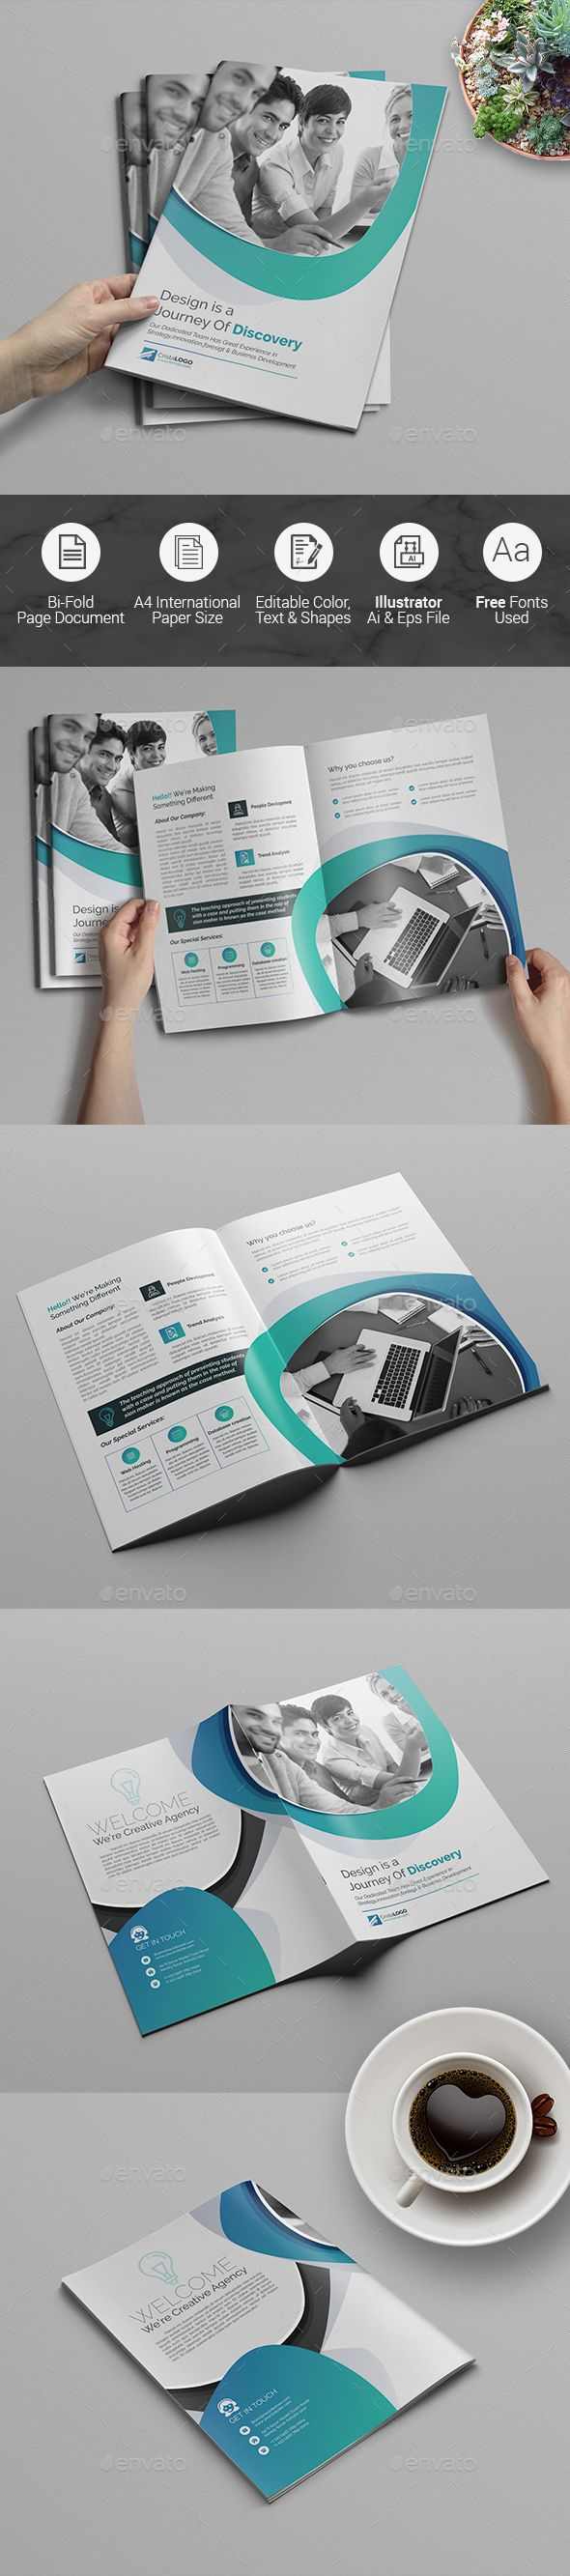 10130 best images about brochure templates on pinterest for Bi fold brochure template illustrator